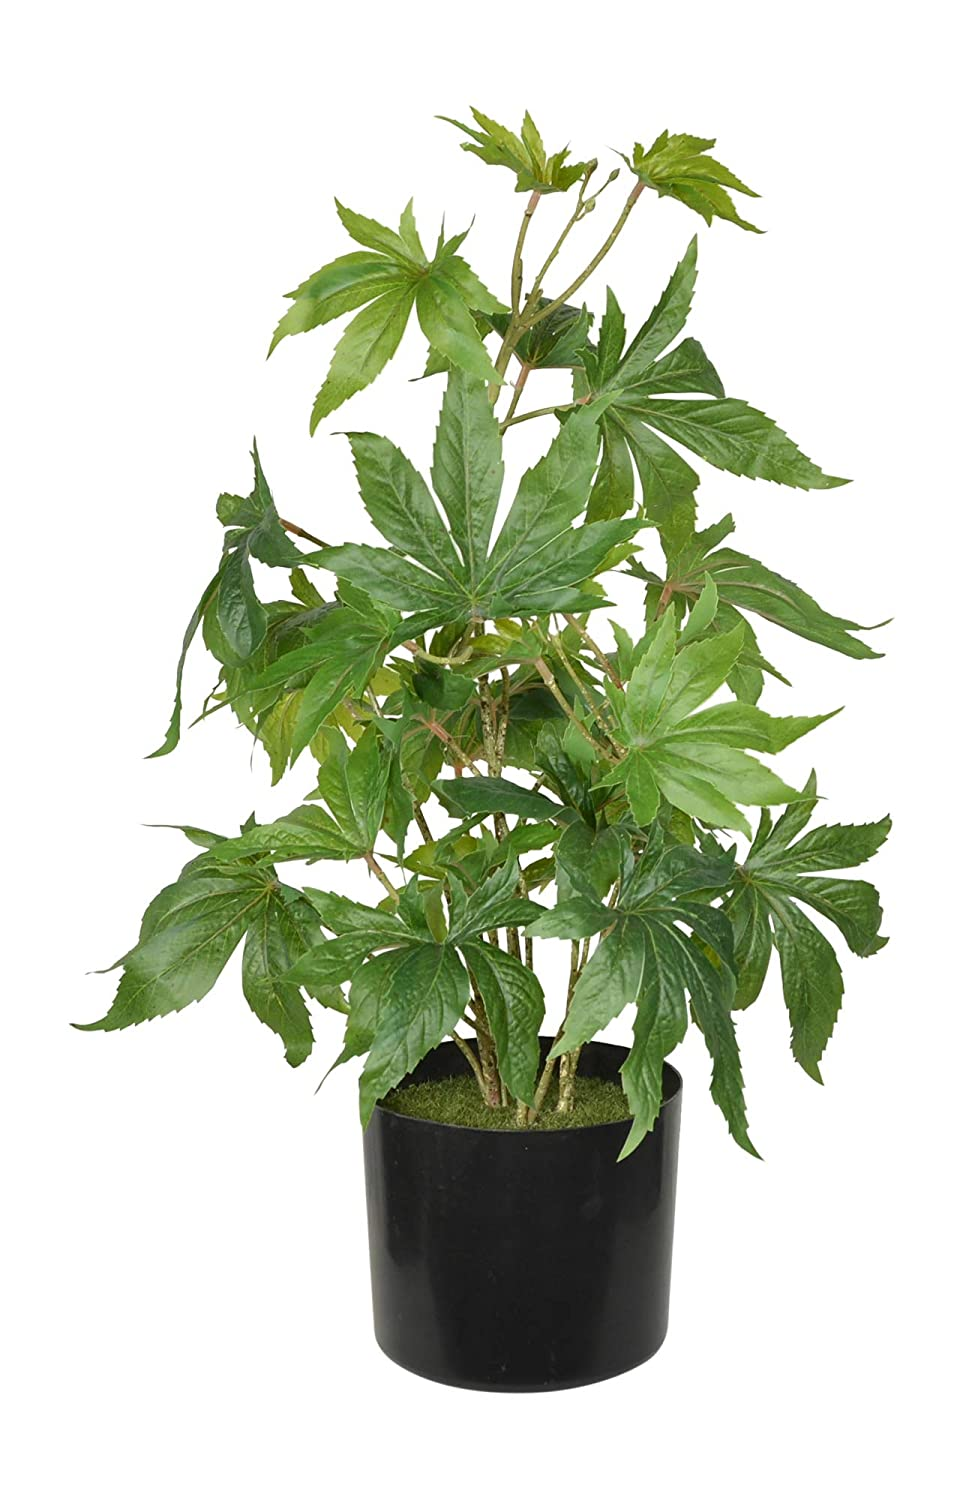 TenWaterloo 24 Inch Artificial Marijuana Plant, Potted Plant, Cannabis Plant